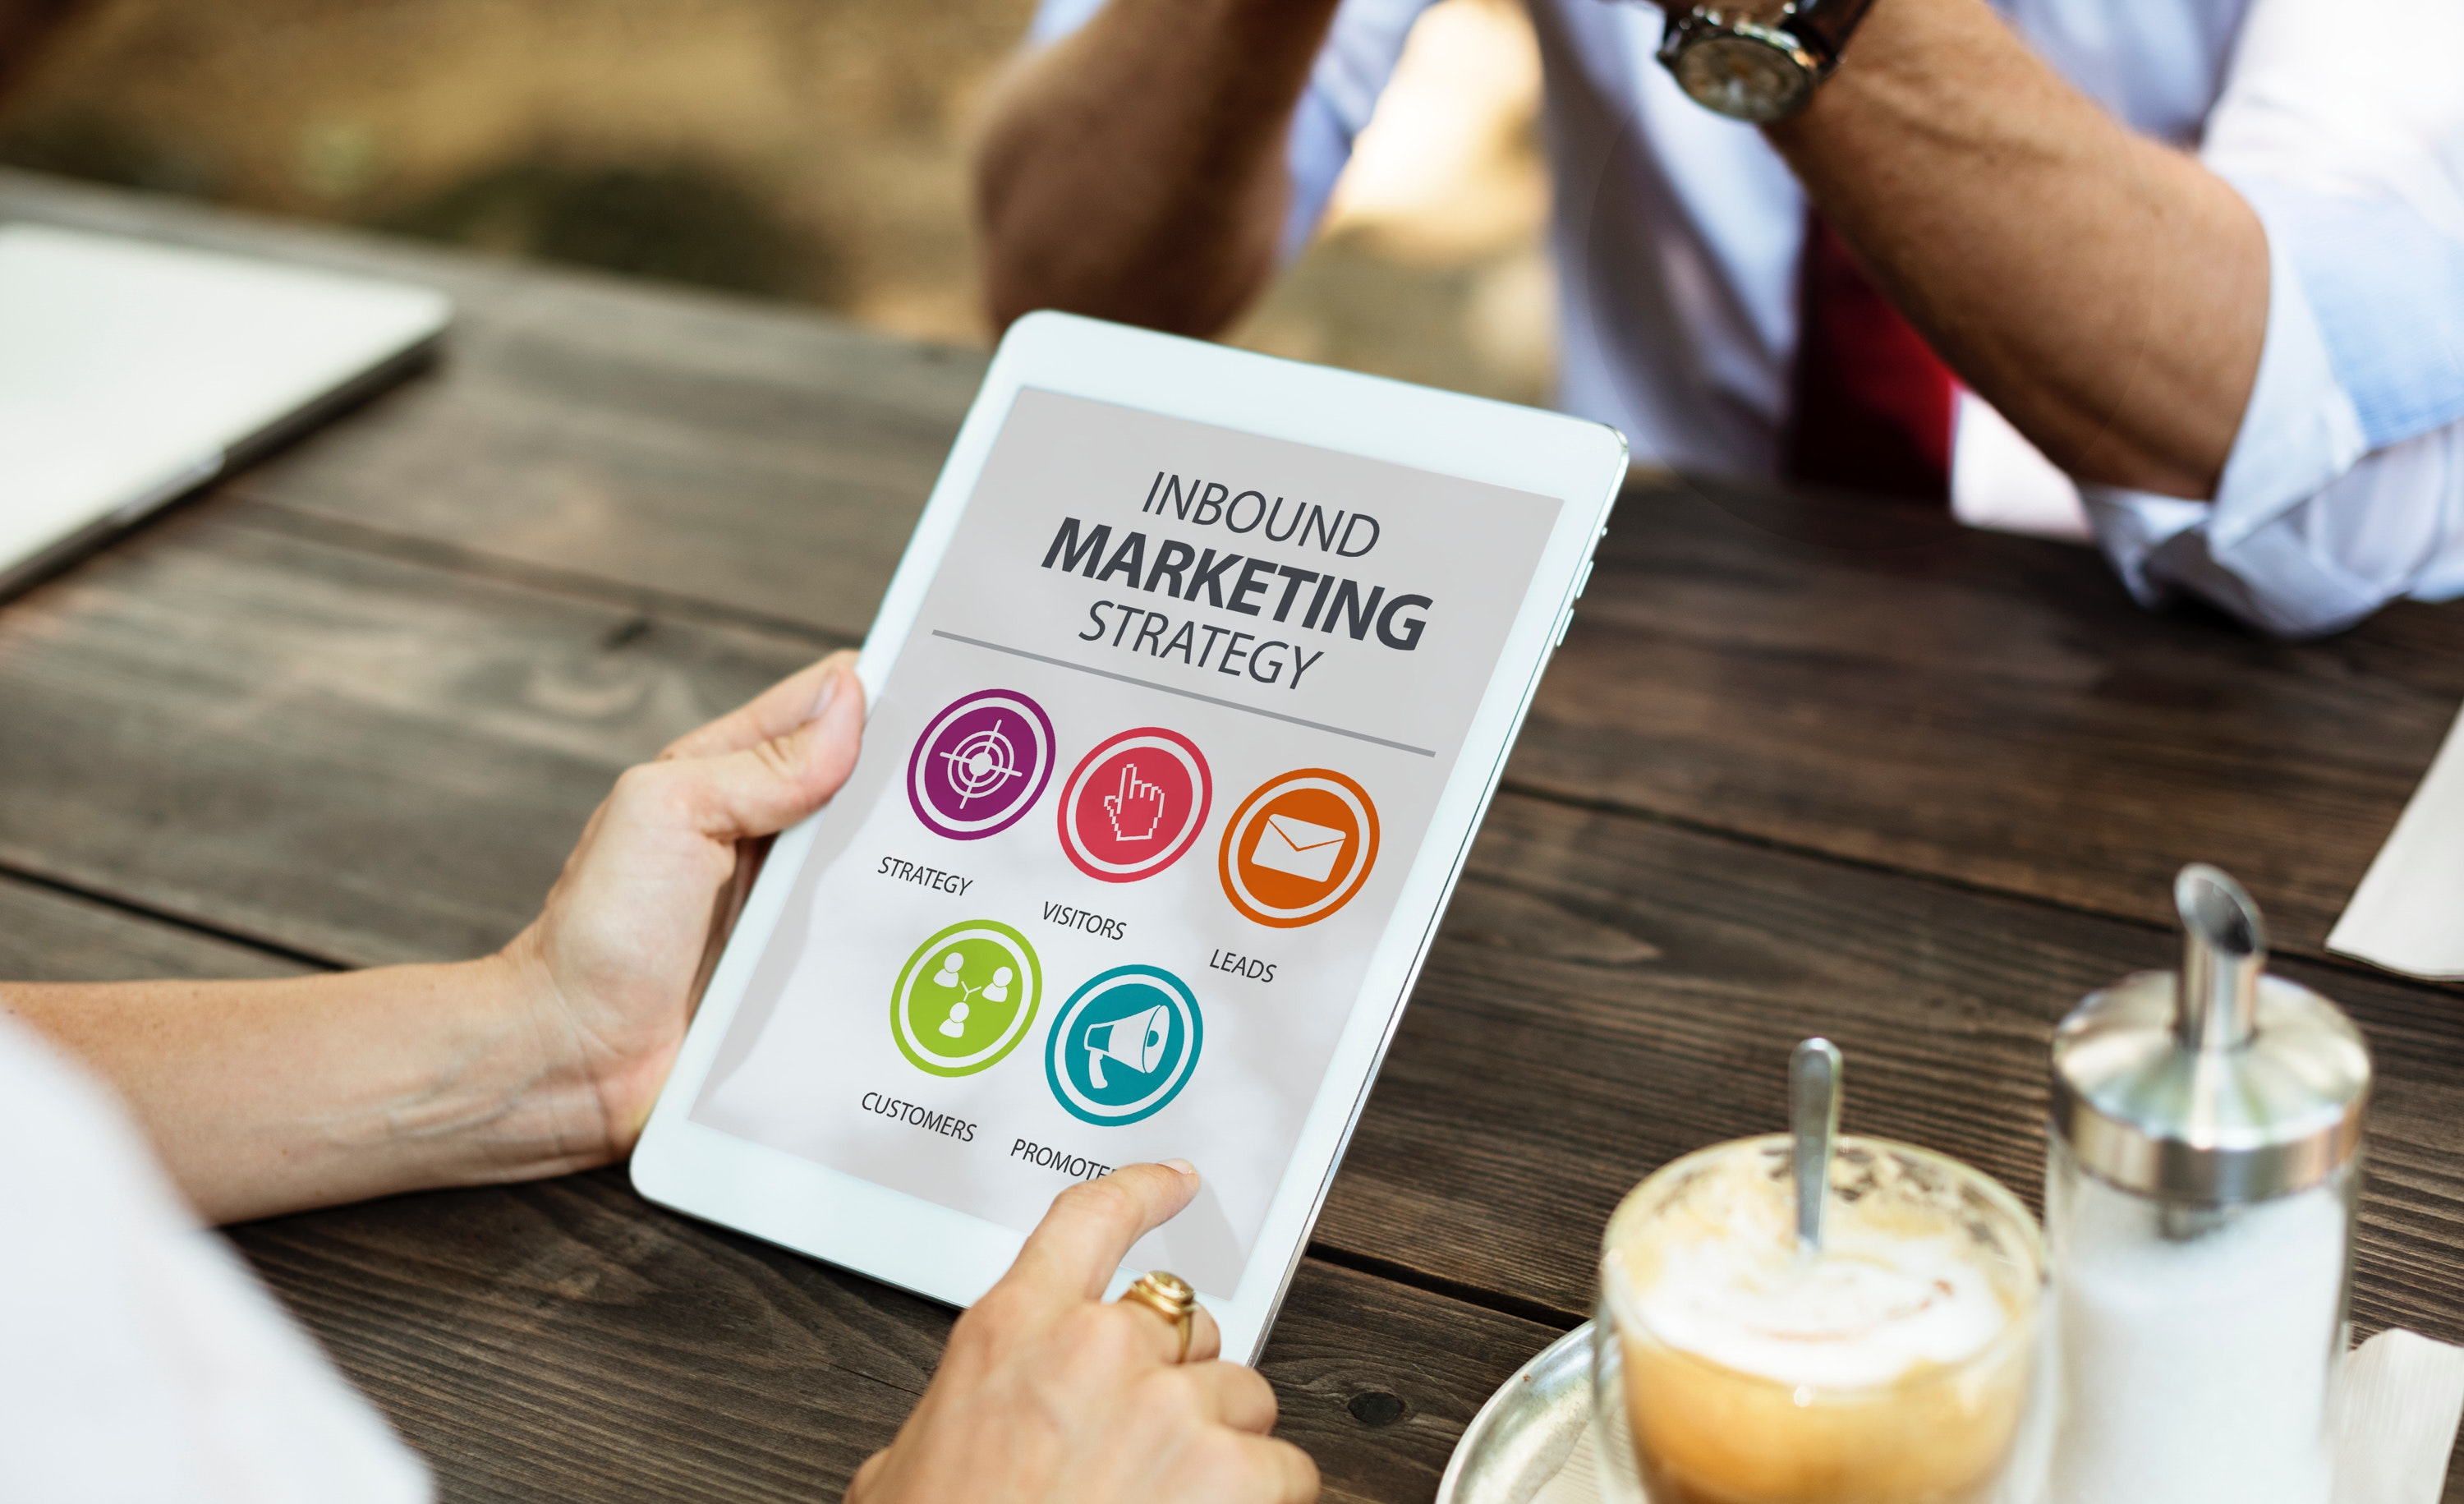 How to build the perfect marketing strategy